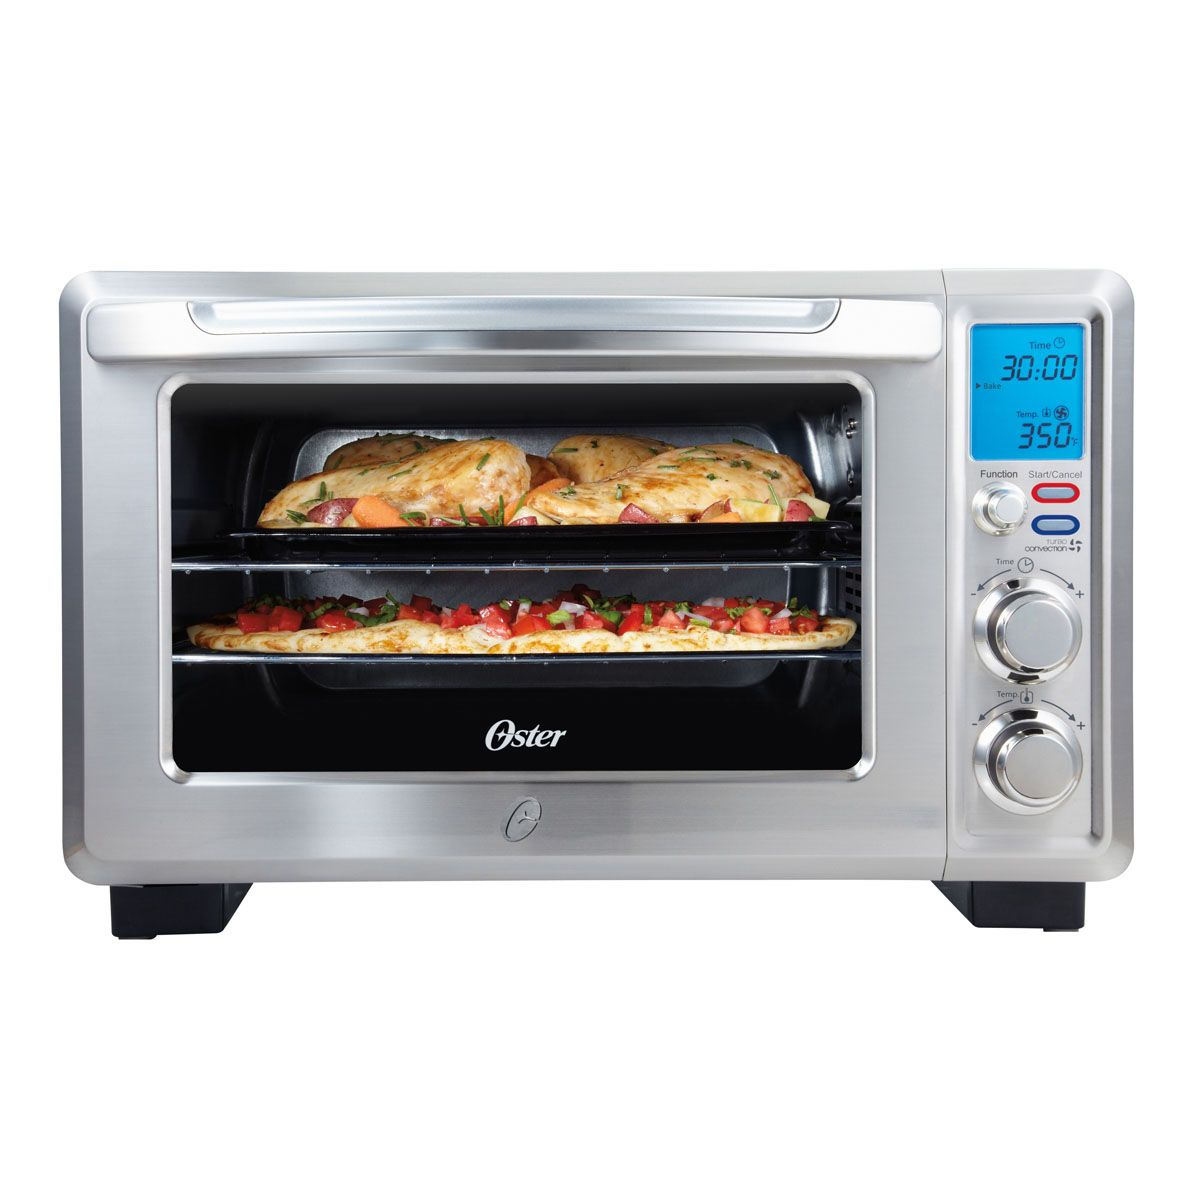 Oster Inspire 6 Slice Digital Convection Countertop Oven